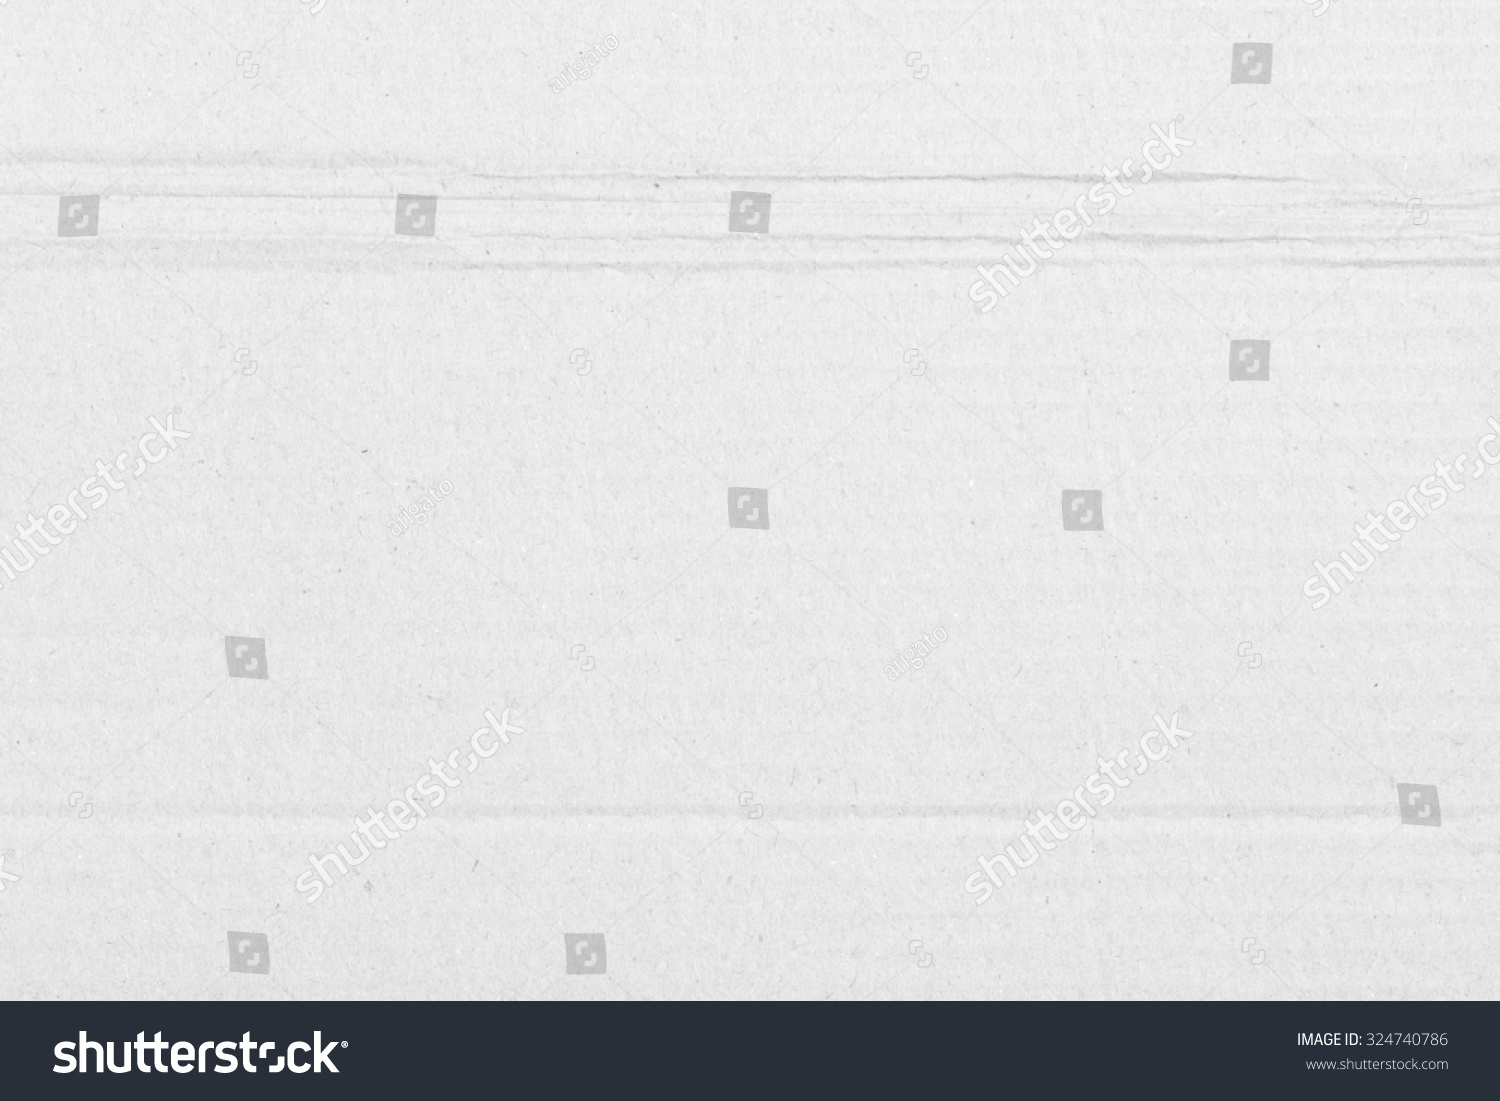 White Cardboard Texture Stock Photo 324740786 - Shutterstock